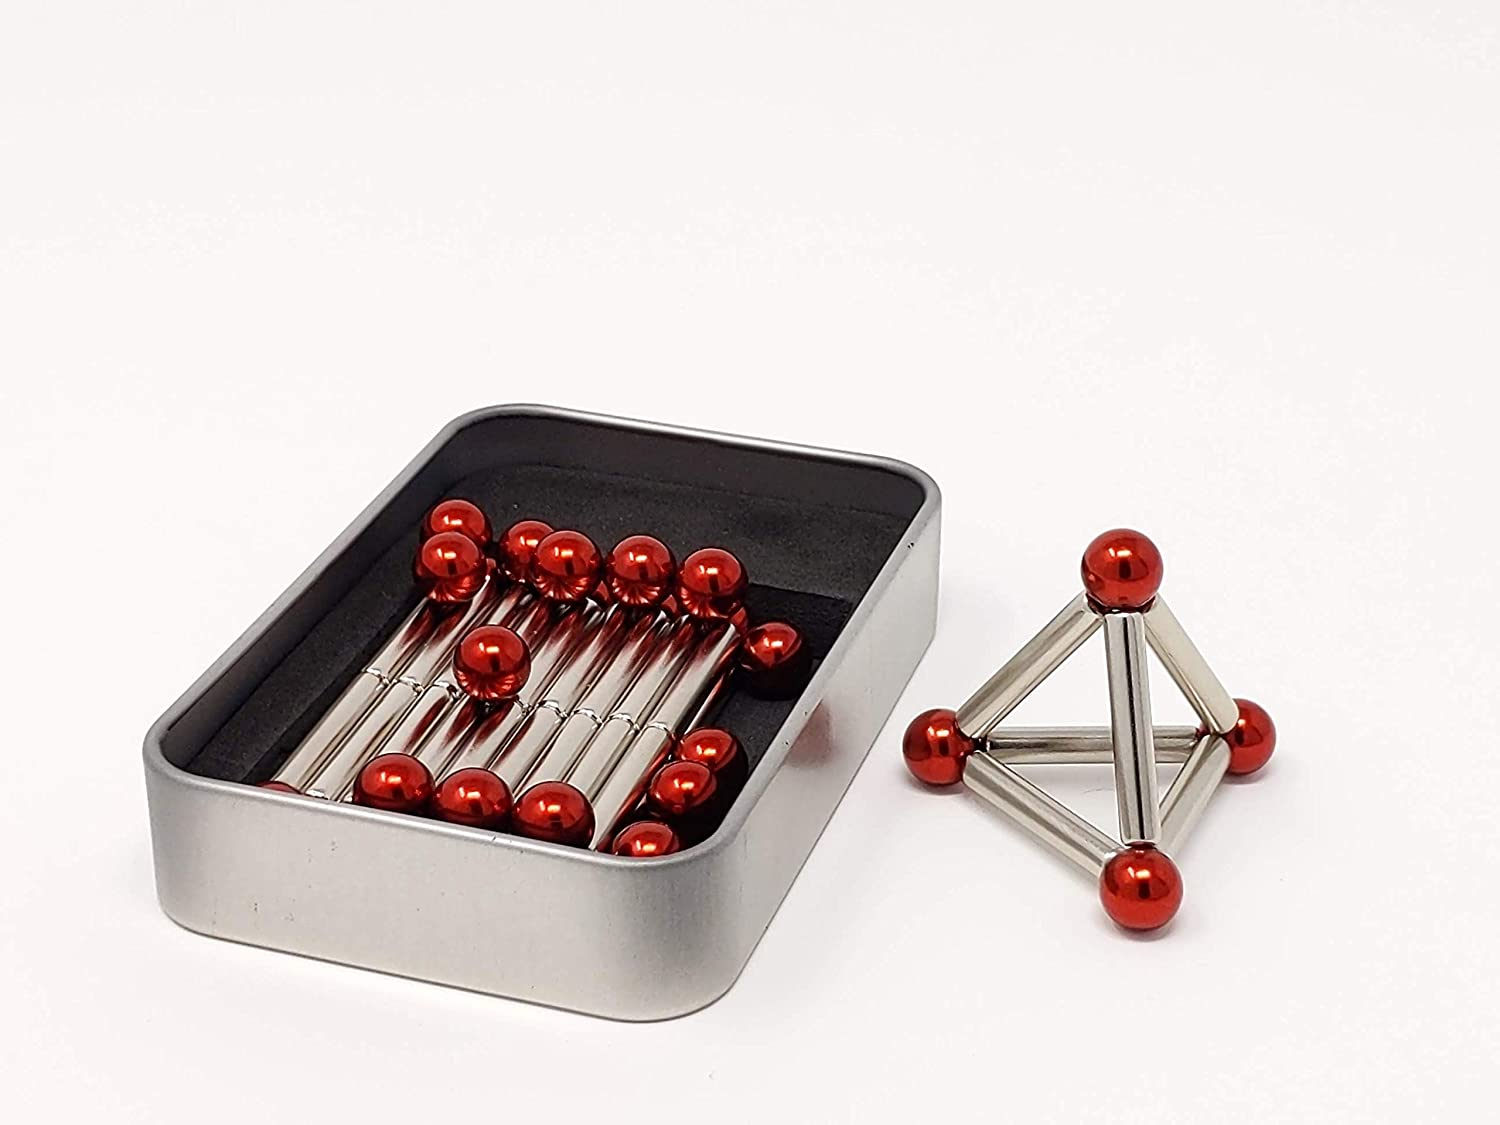 Magnetic bars and balls set, cool toys and gifts for adults for construction fun . The best magnet gadgets for office desk or home. A desktop toy for building, play or for decor. (Silver Red Tin Pack)